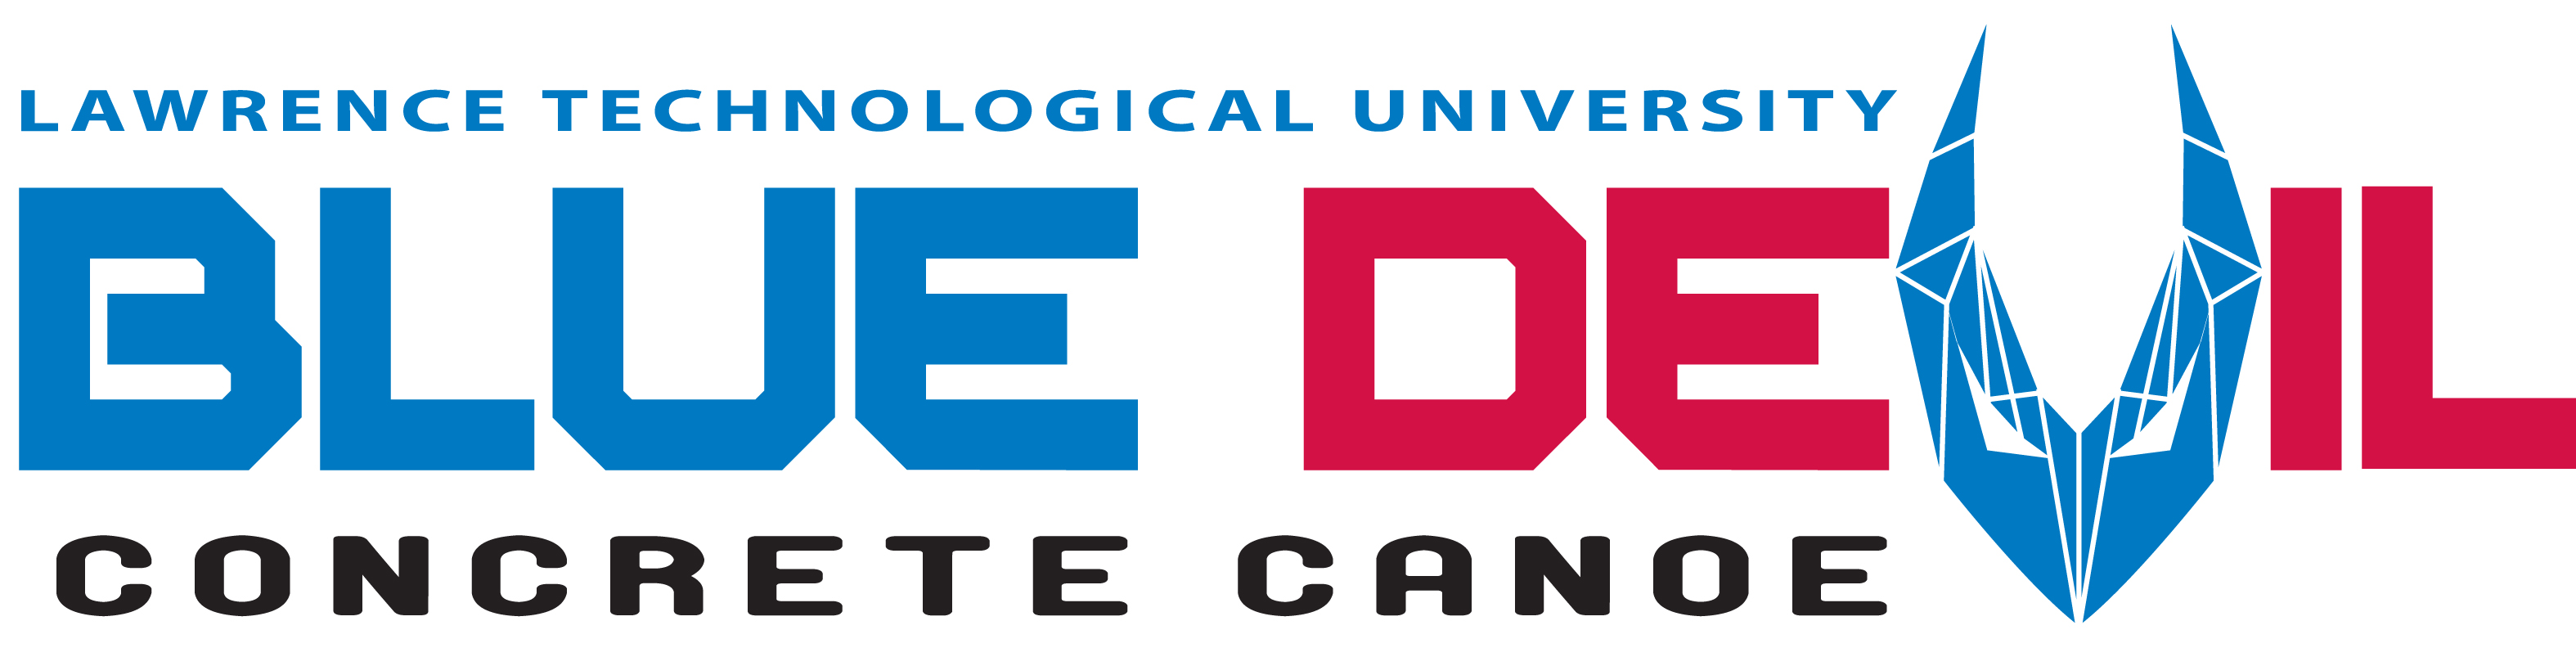 blue-devil-civil-teams-logo-ltu-concrete-canoe.jpg